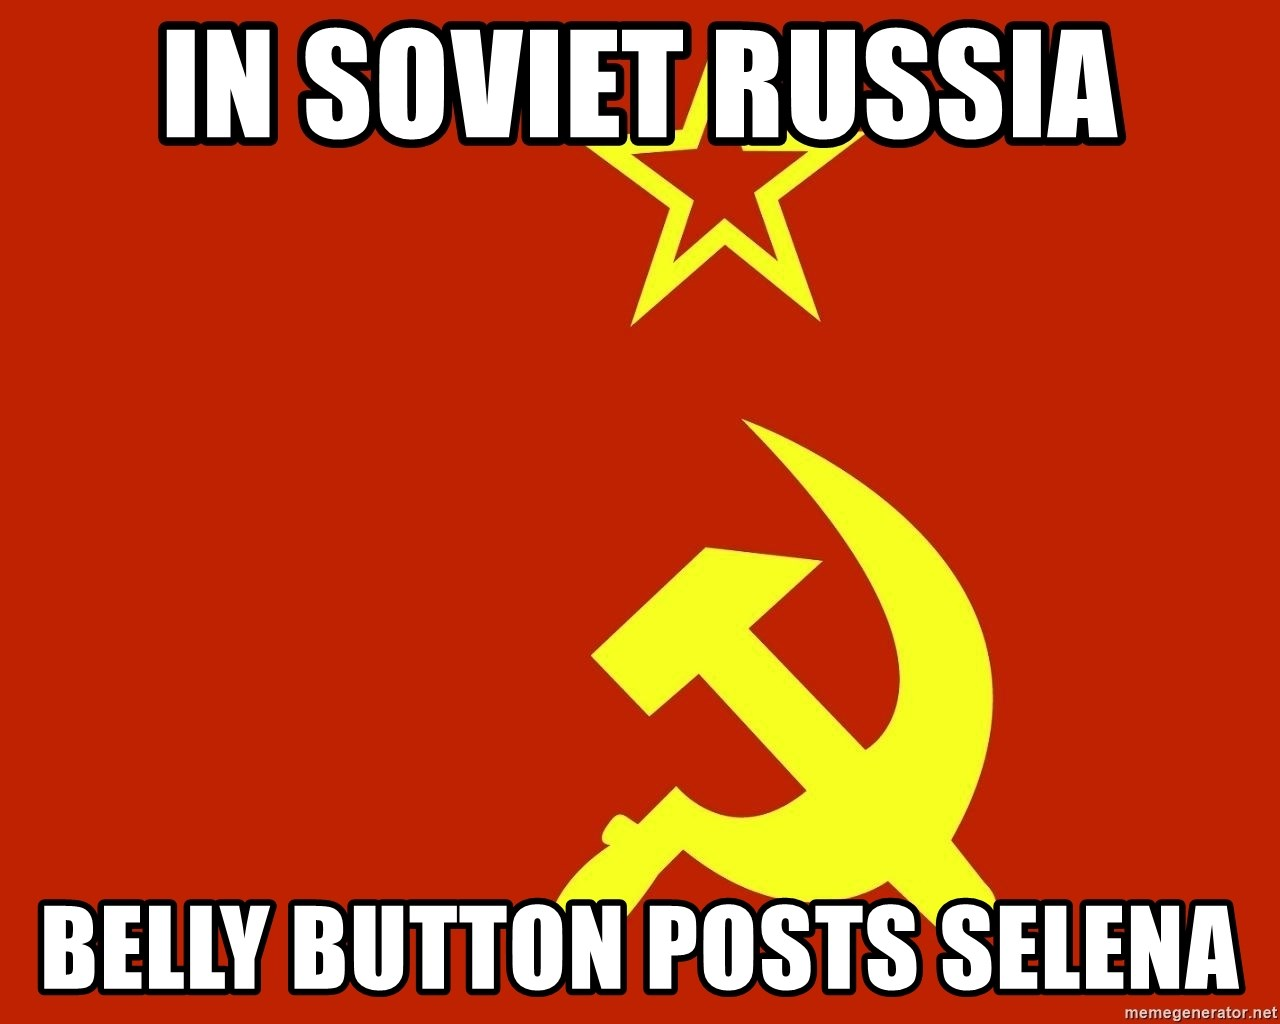 In Soviet Russia - in soviet russia belly button posts selena